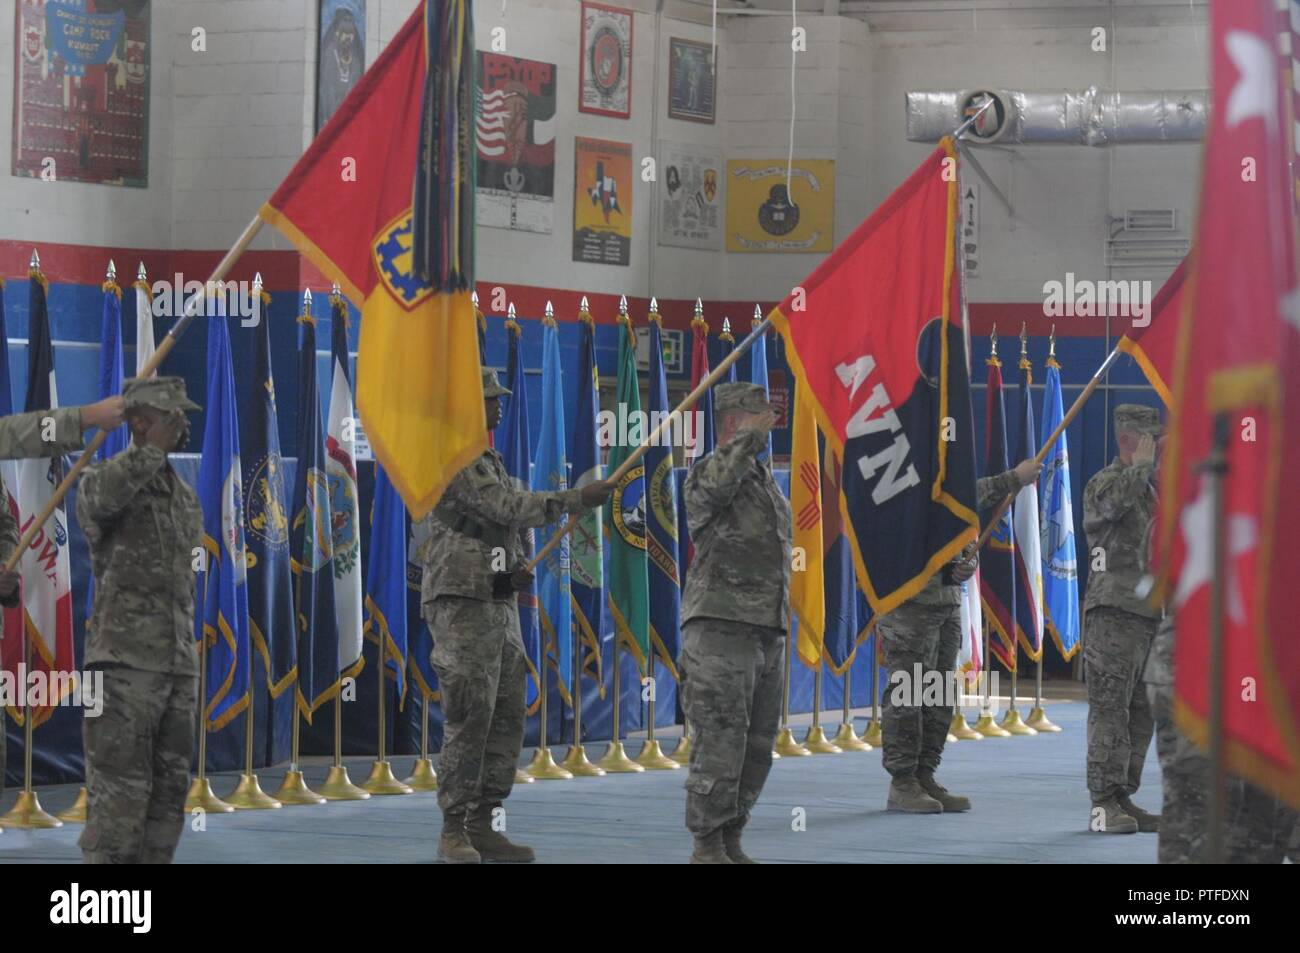 CAMP ARIFJAN, Kuwait – Col Mark Beckler, commander of the 29th Combat Aviation Brigade, and Spc. Kamau Miller, guidon bearer render a salute during the playing of the National Anthem during the Transfer of Authority ceremony at Camp Arifjan, Kuwait, July 13, 2017. The TOA signaled the outgoing 29th Infantry Division out of Maryland and Virginia and welcomed in the 35th Infantry Division out of Fort Leavenworth, Kansas. - Stock Image